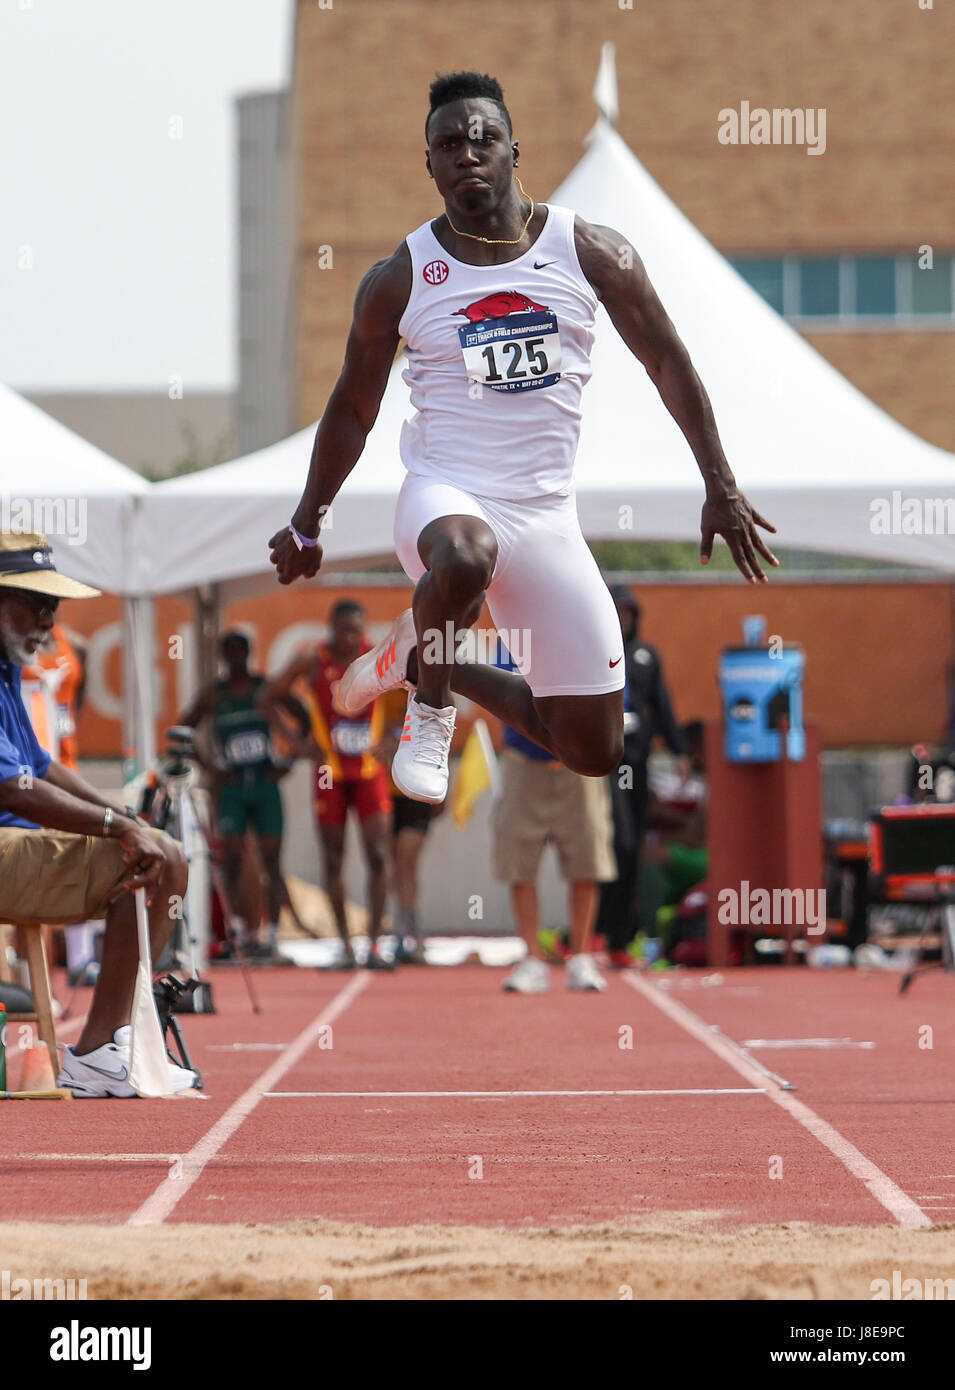 Austin, TX, USA. 27th May, 2017. Arkansas' Clive Pullen jumps during the men's triple jump at the 2017 NCAA - Stock Image